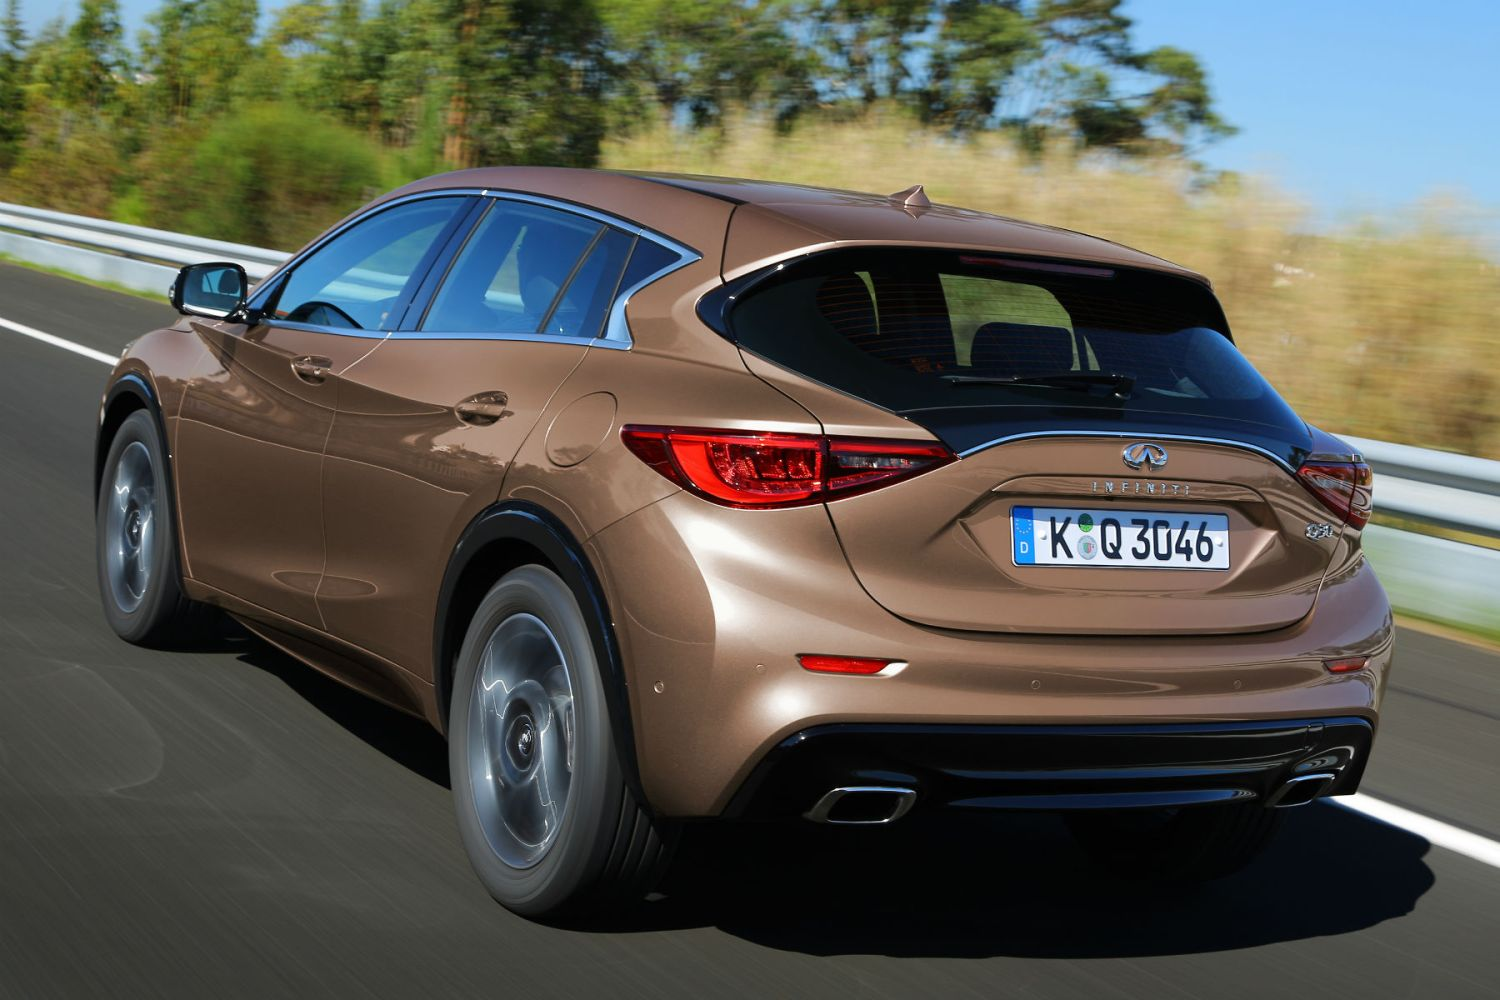 Infiniti Q30 review: On the inside